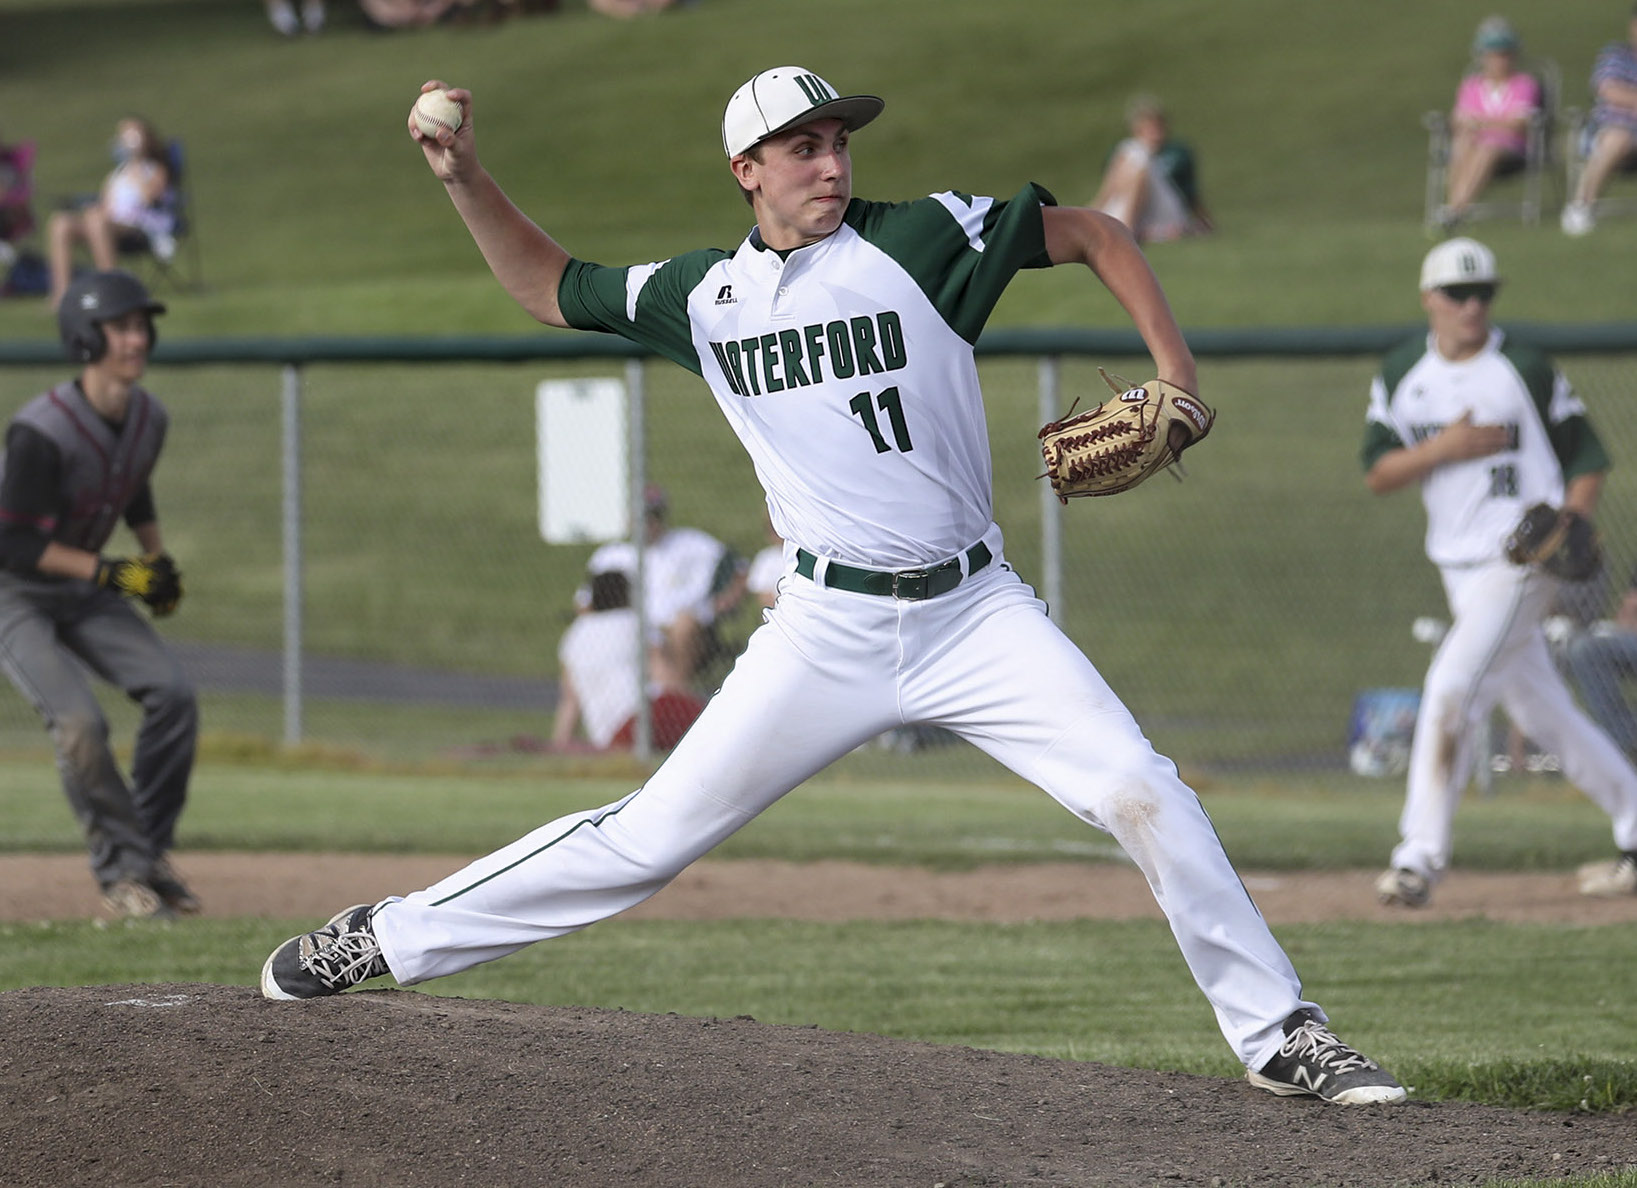 Locked and reloaded: Waterford baseball seeking conference championship